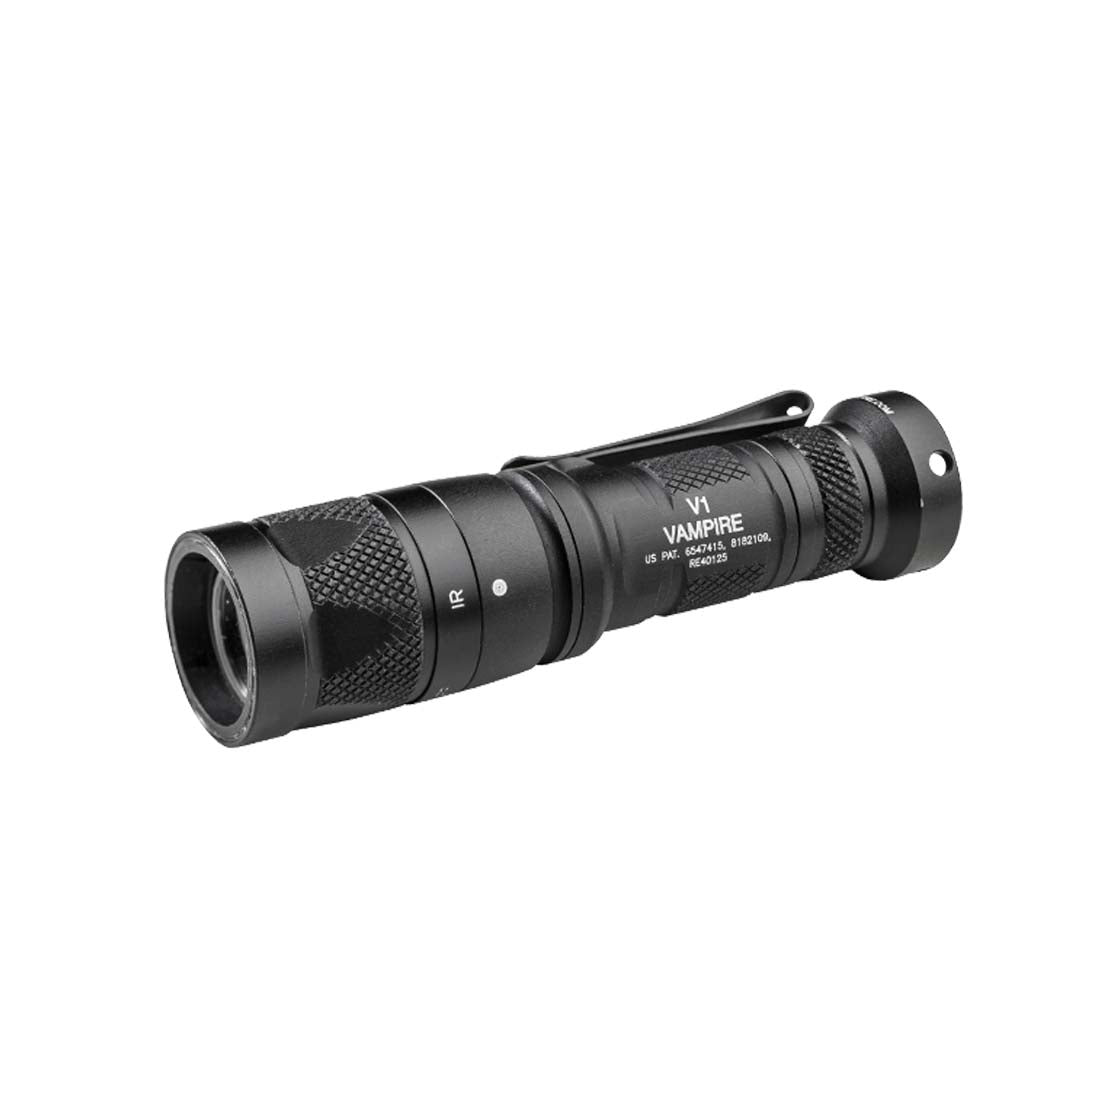 Surefire V1 Vampire Dual Output Led ? White and IR Output Flashlight